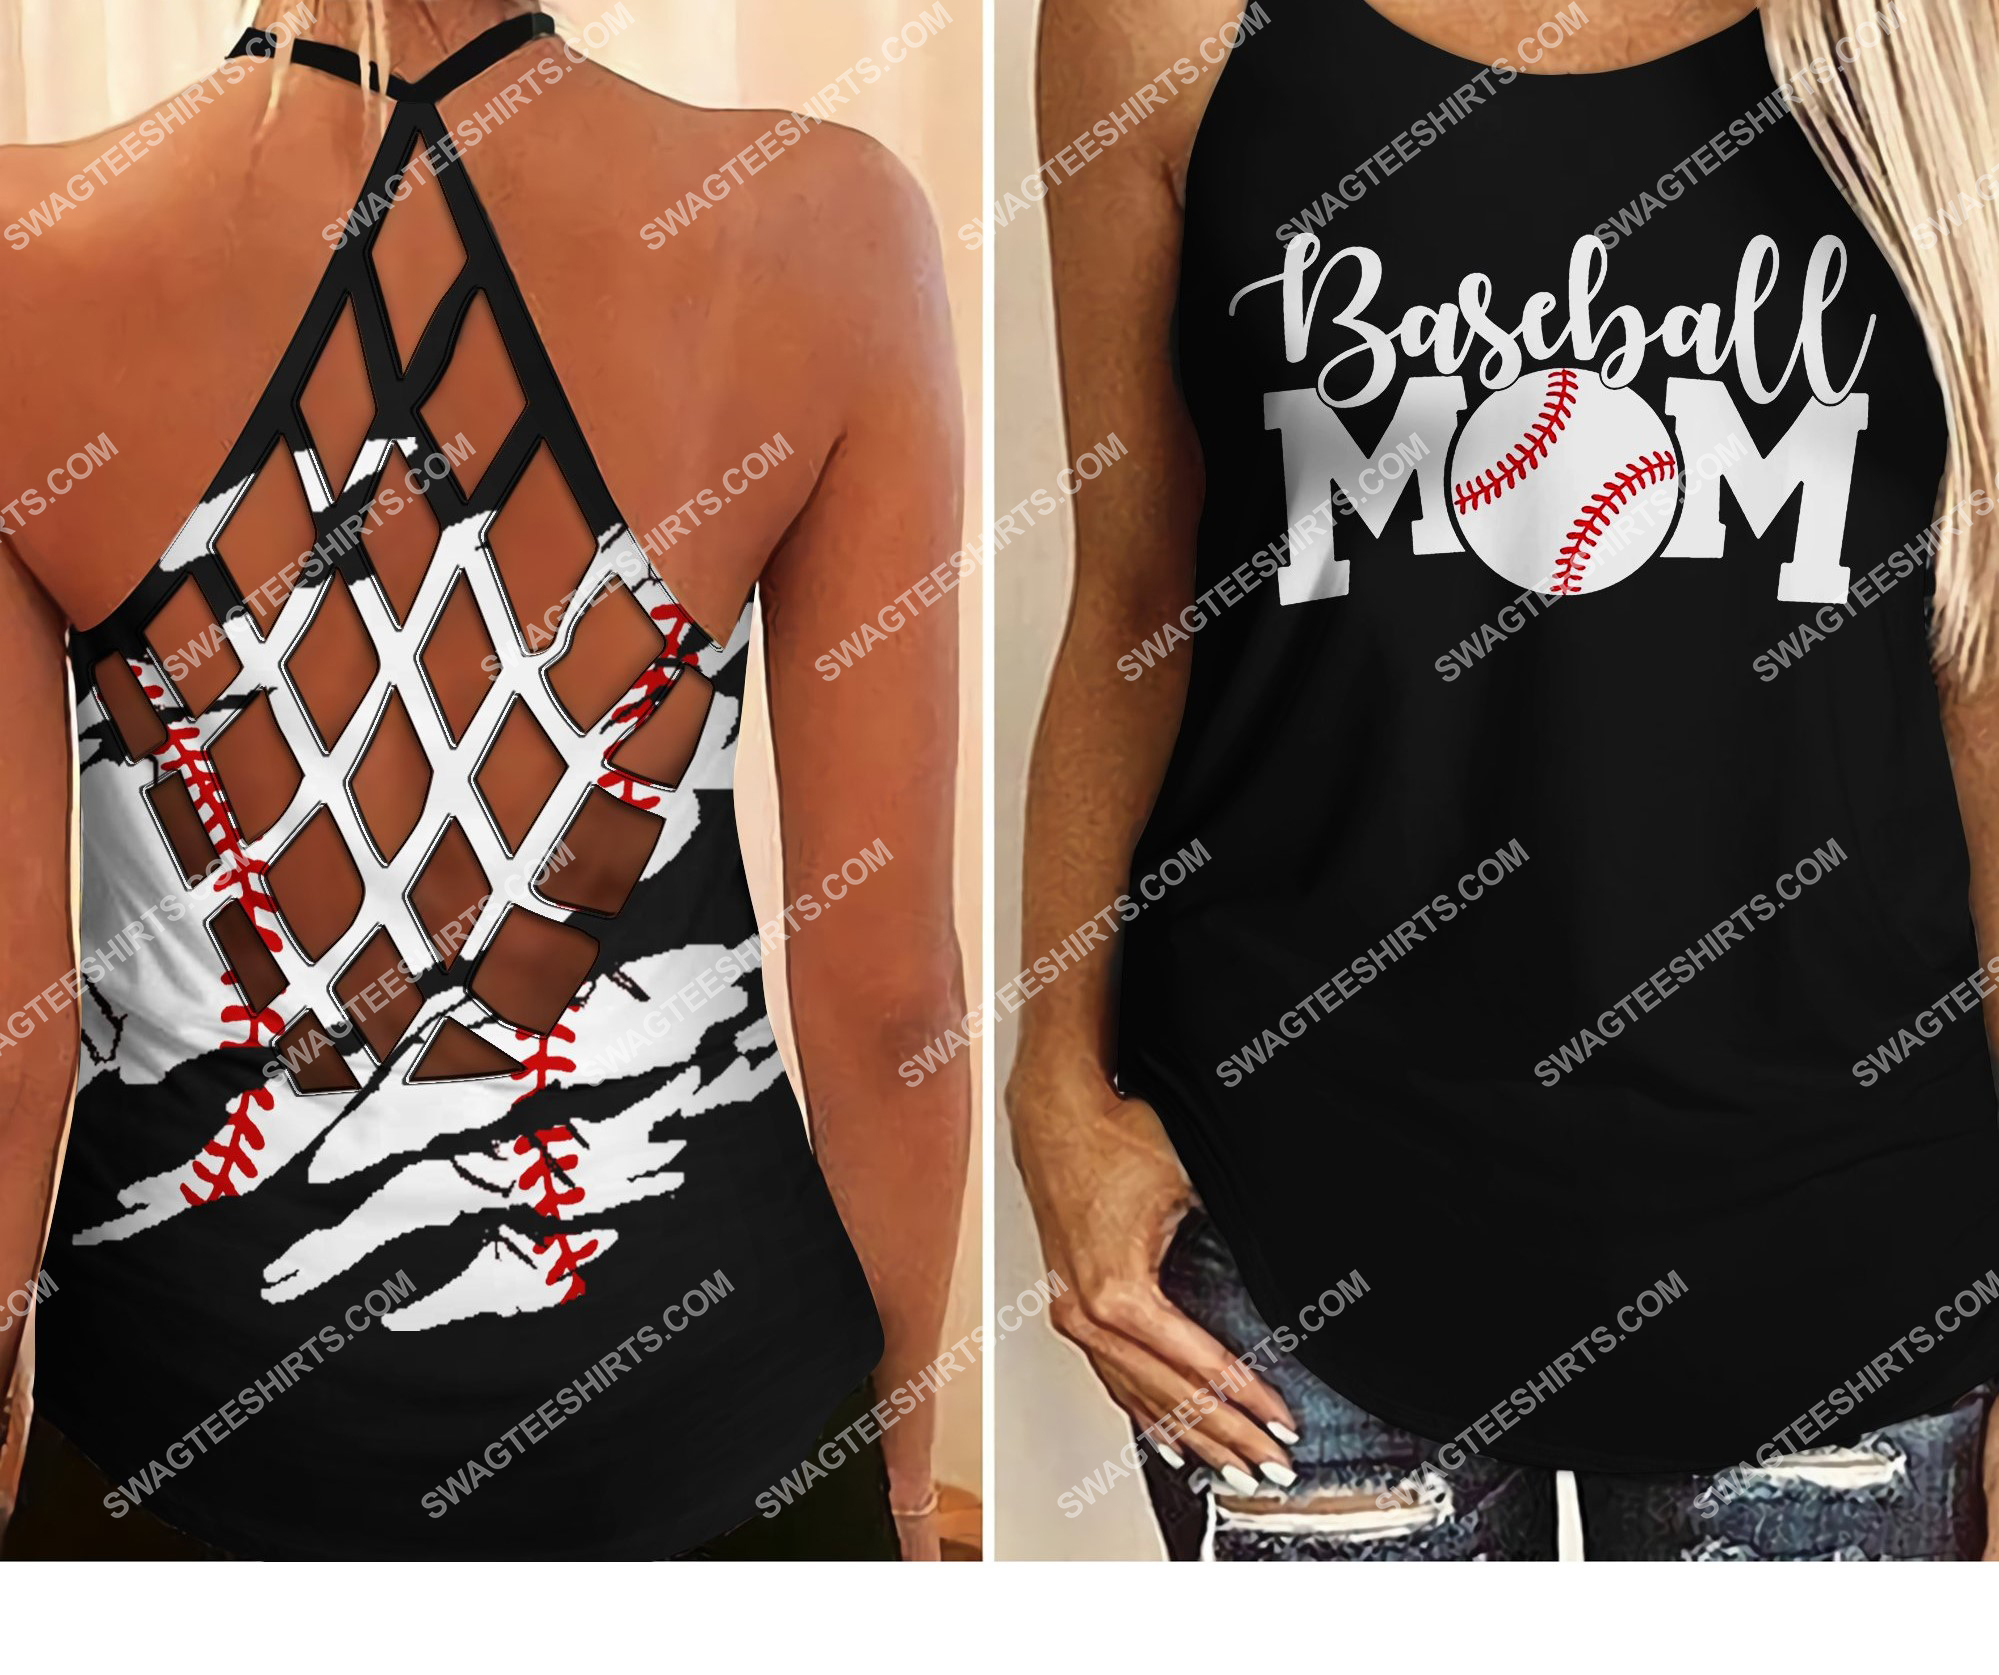 vintage baseball mom all over printed strappy back tank top 2 - Copy